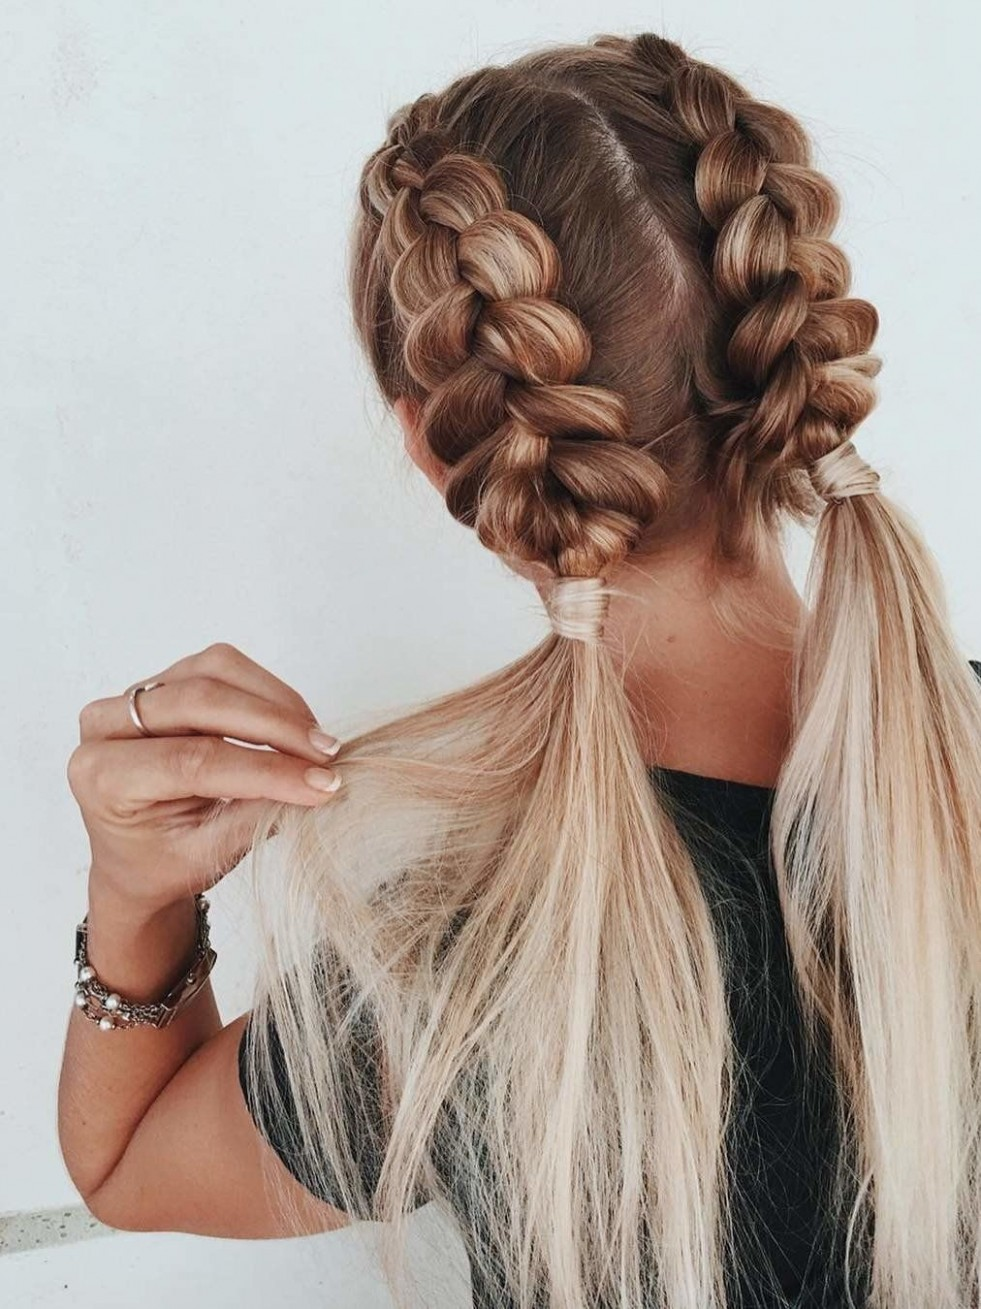 12 Braided Hairstyles That People Are Loving On Pinterest Cool Easy Braided Hairstyles For Long Hair